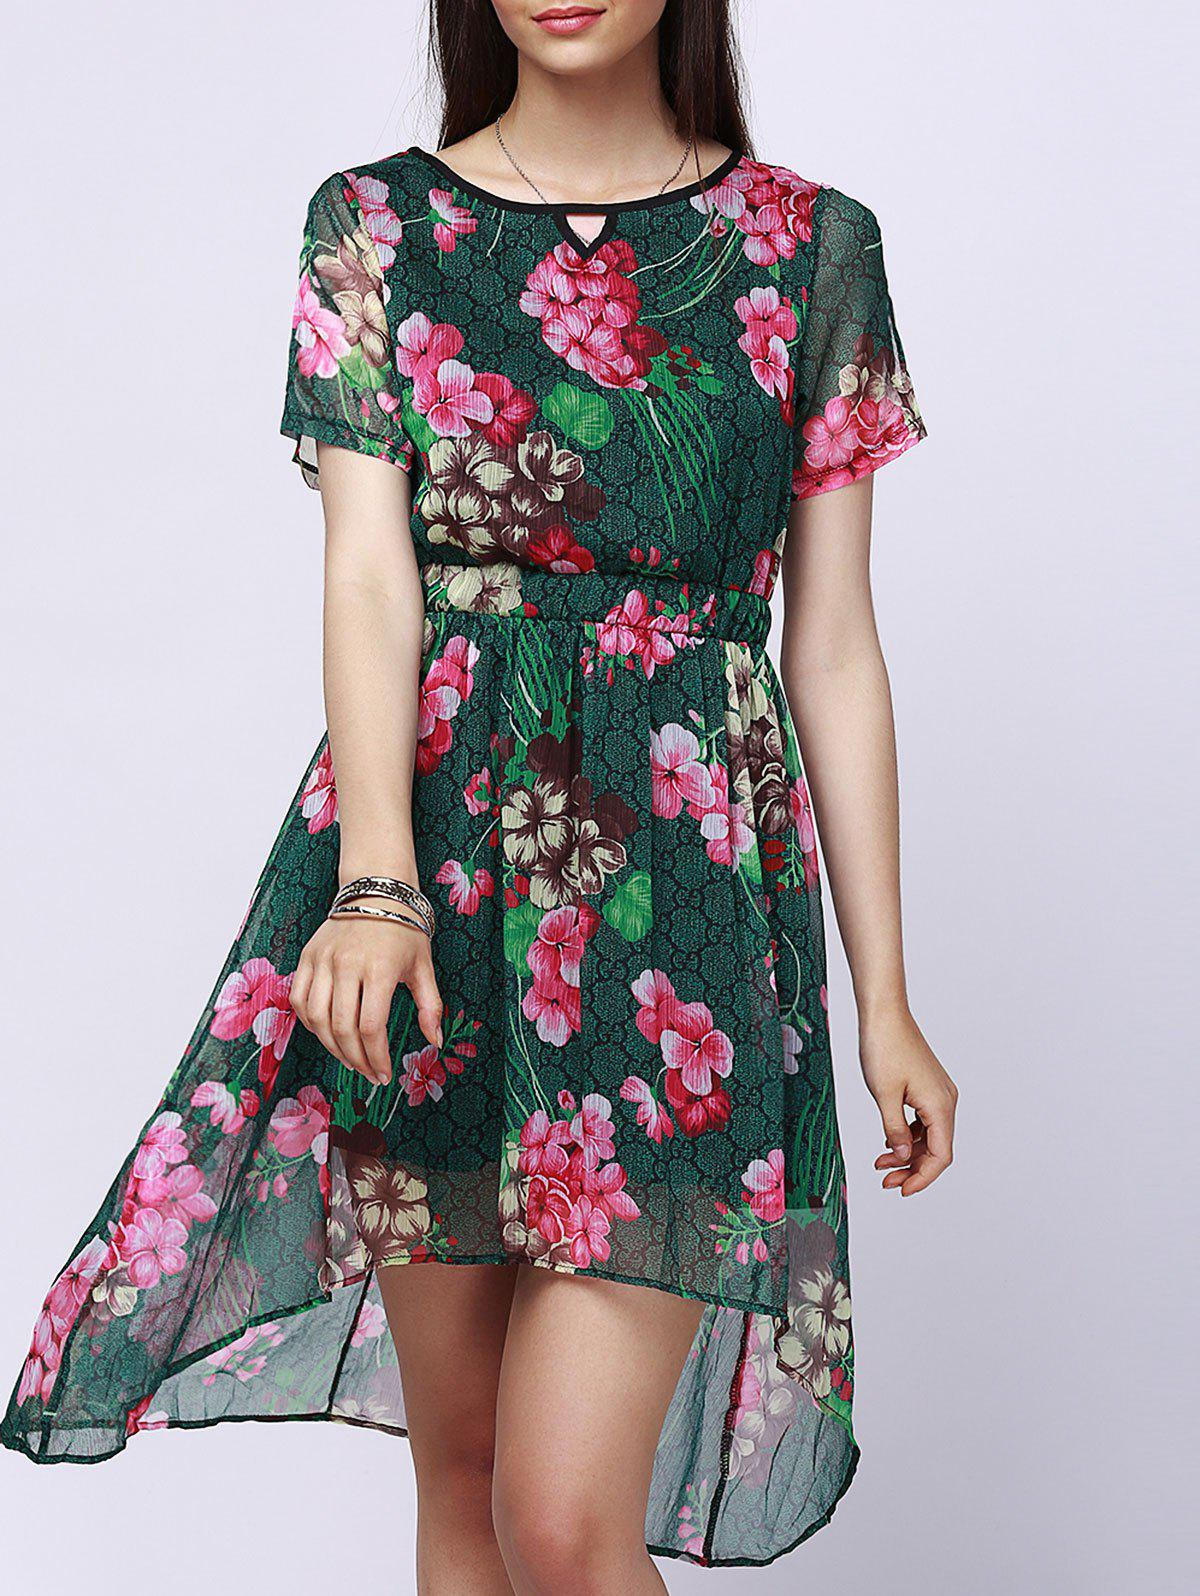 Gorgeous Jewel Neck Short Sleeve Floral Print High Low Dress For Women - GREEN M